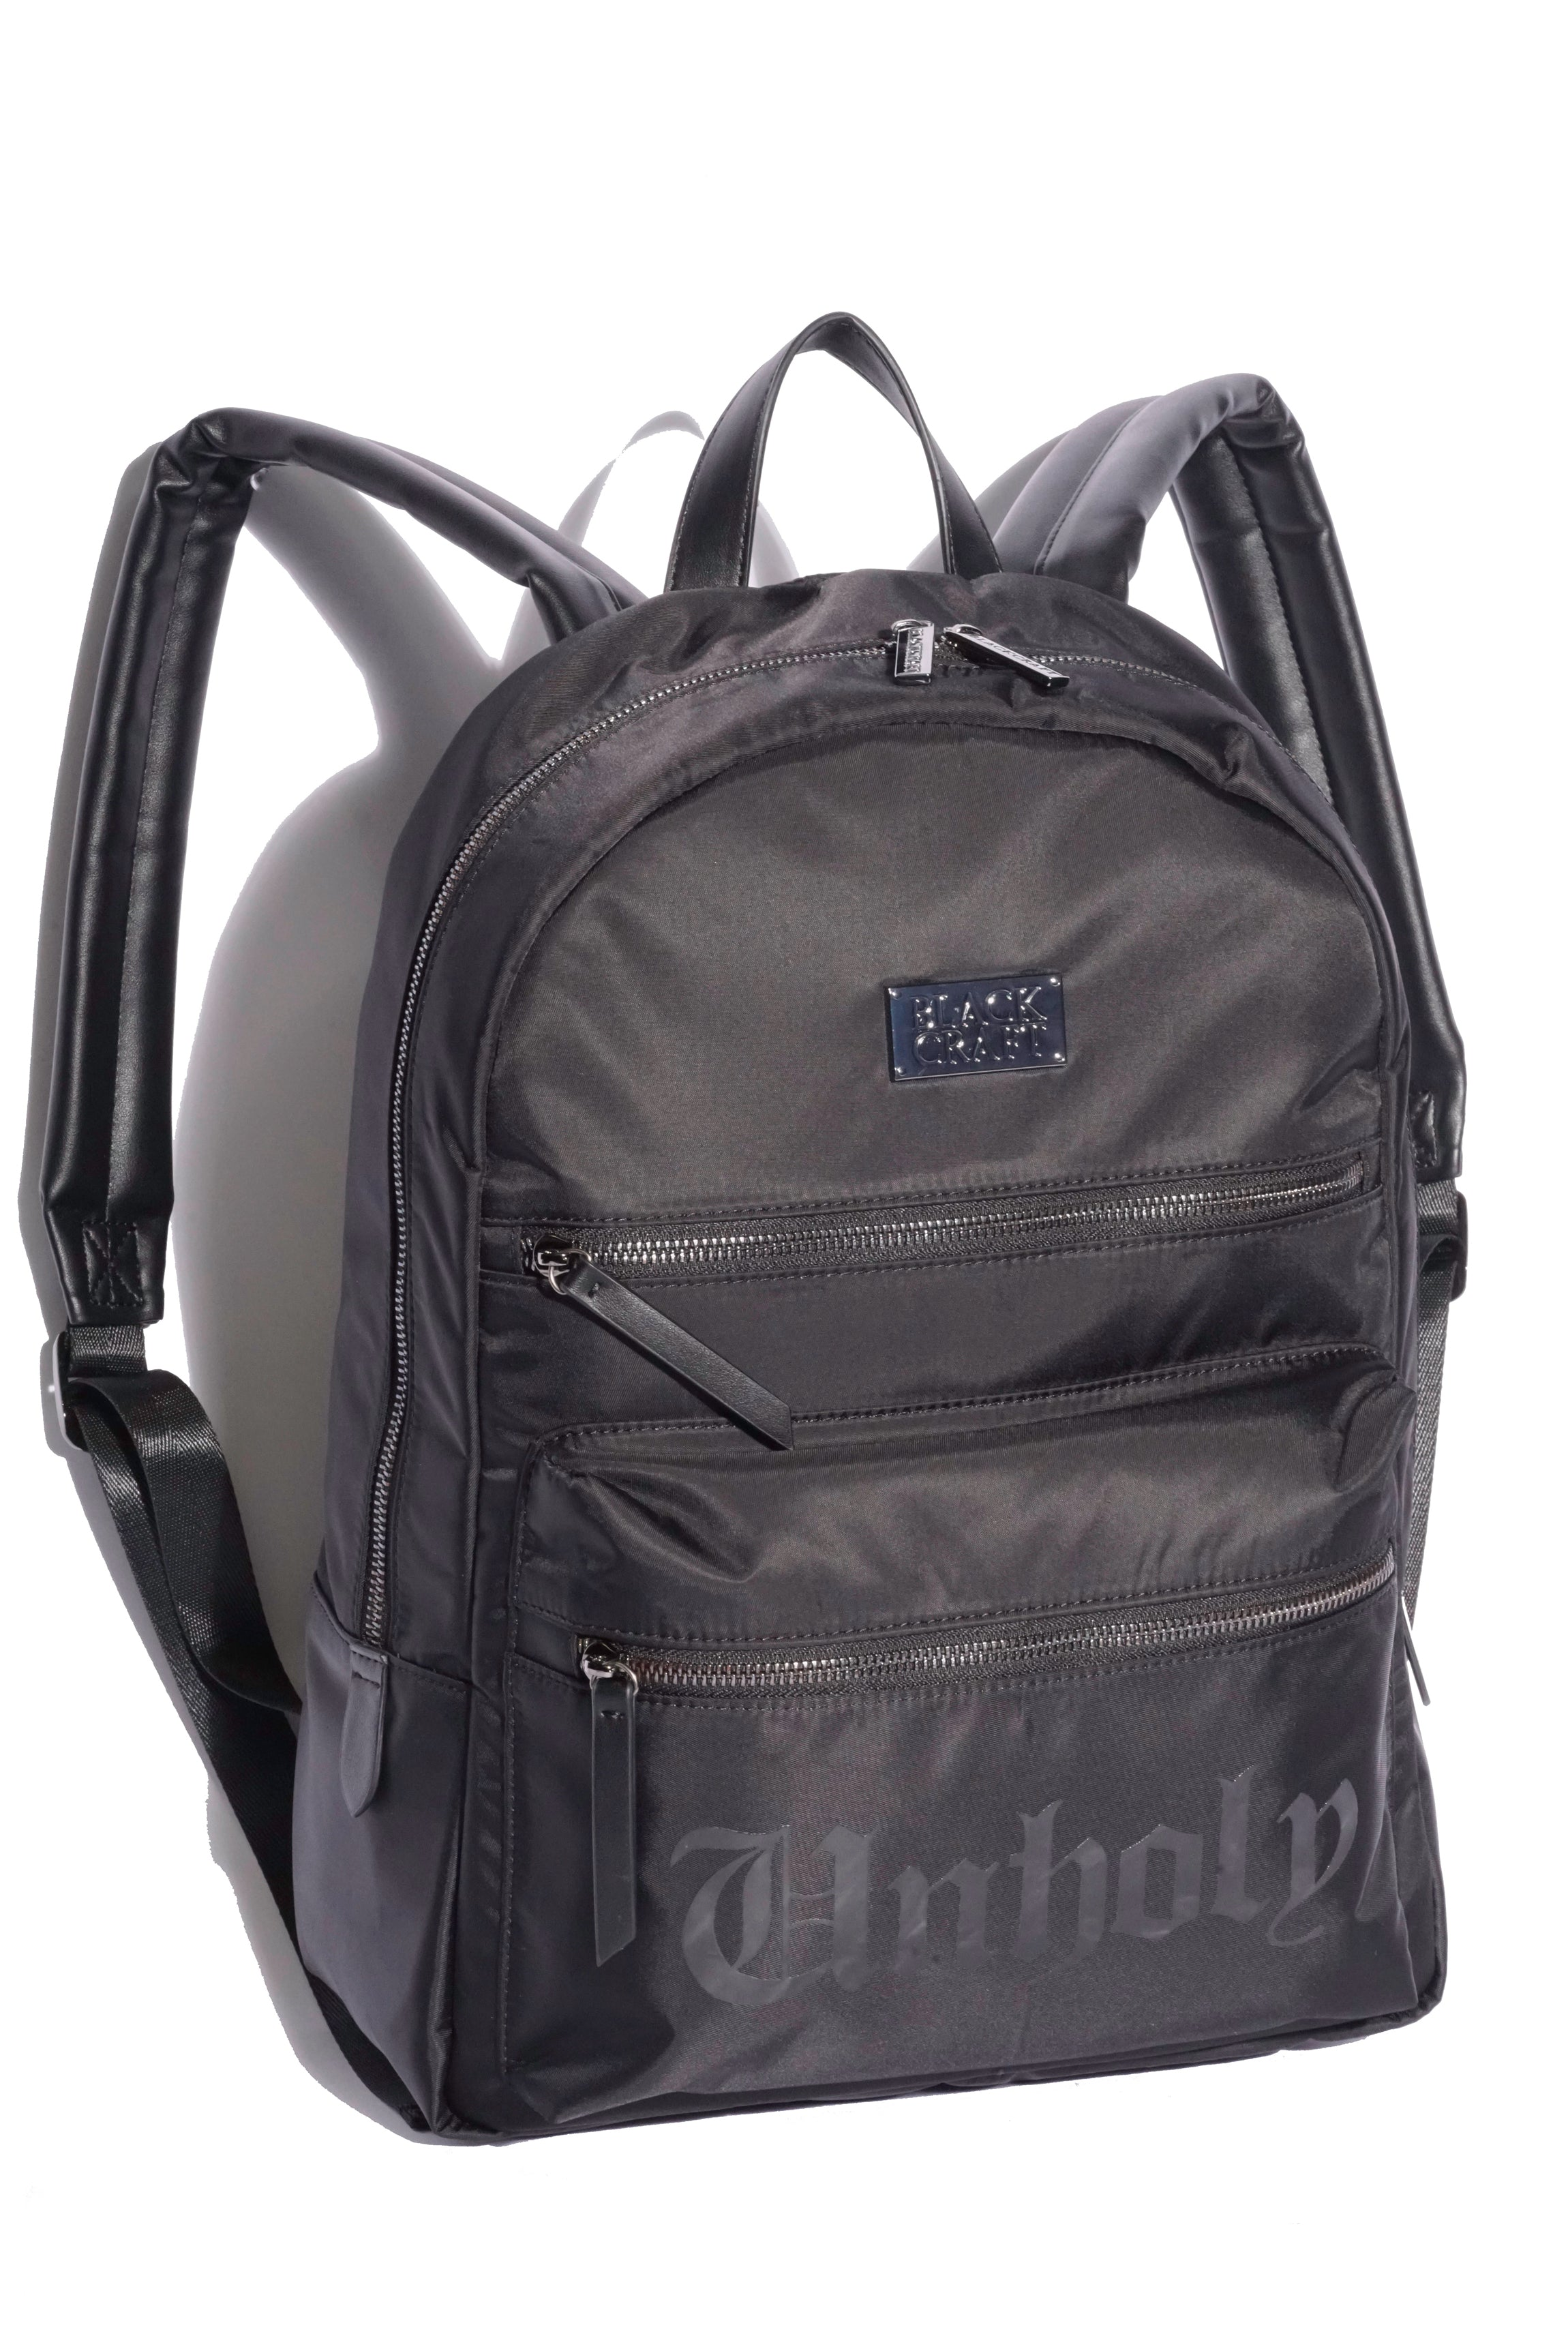 Unholy - Large Nylon Backpack